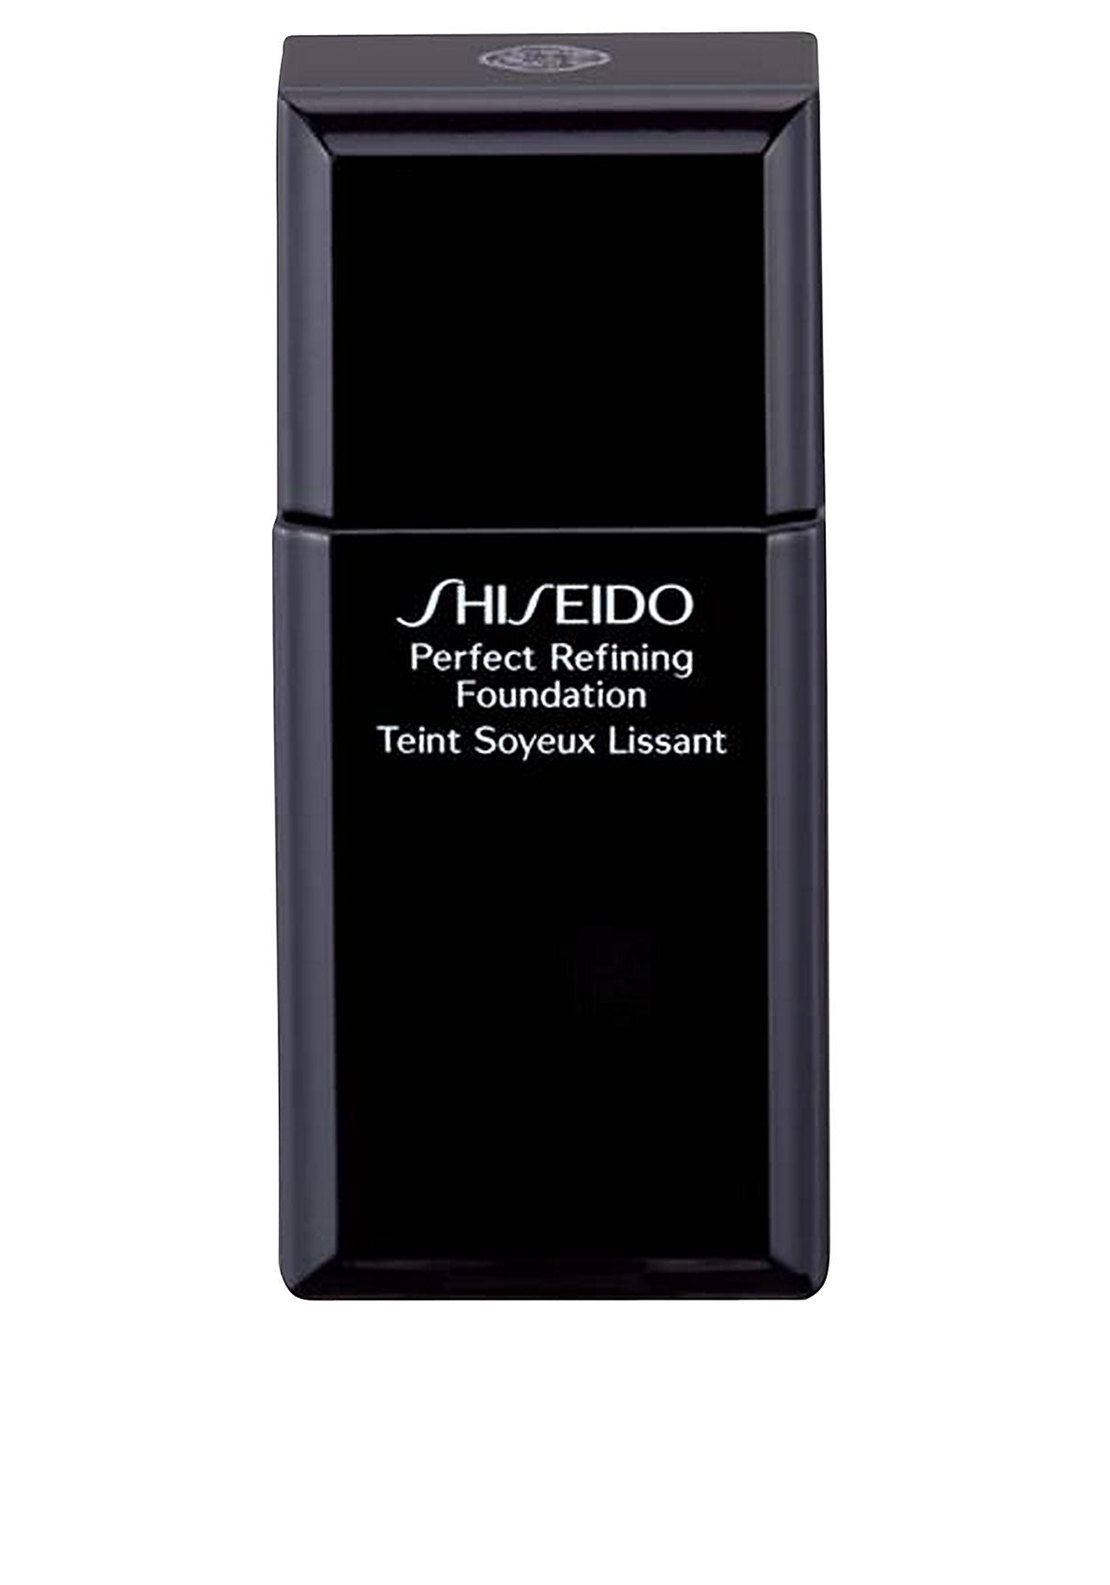 Shiseido Perfect Refining Foundation, Natural Fair Ivory I40